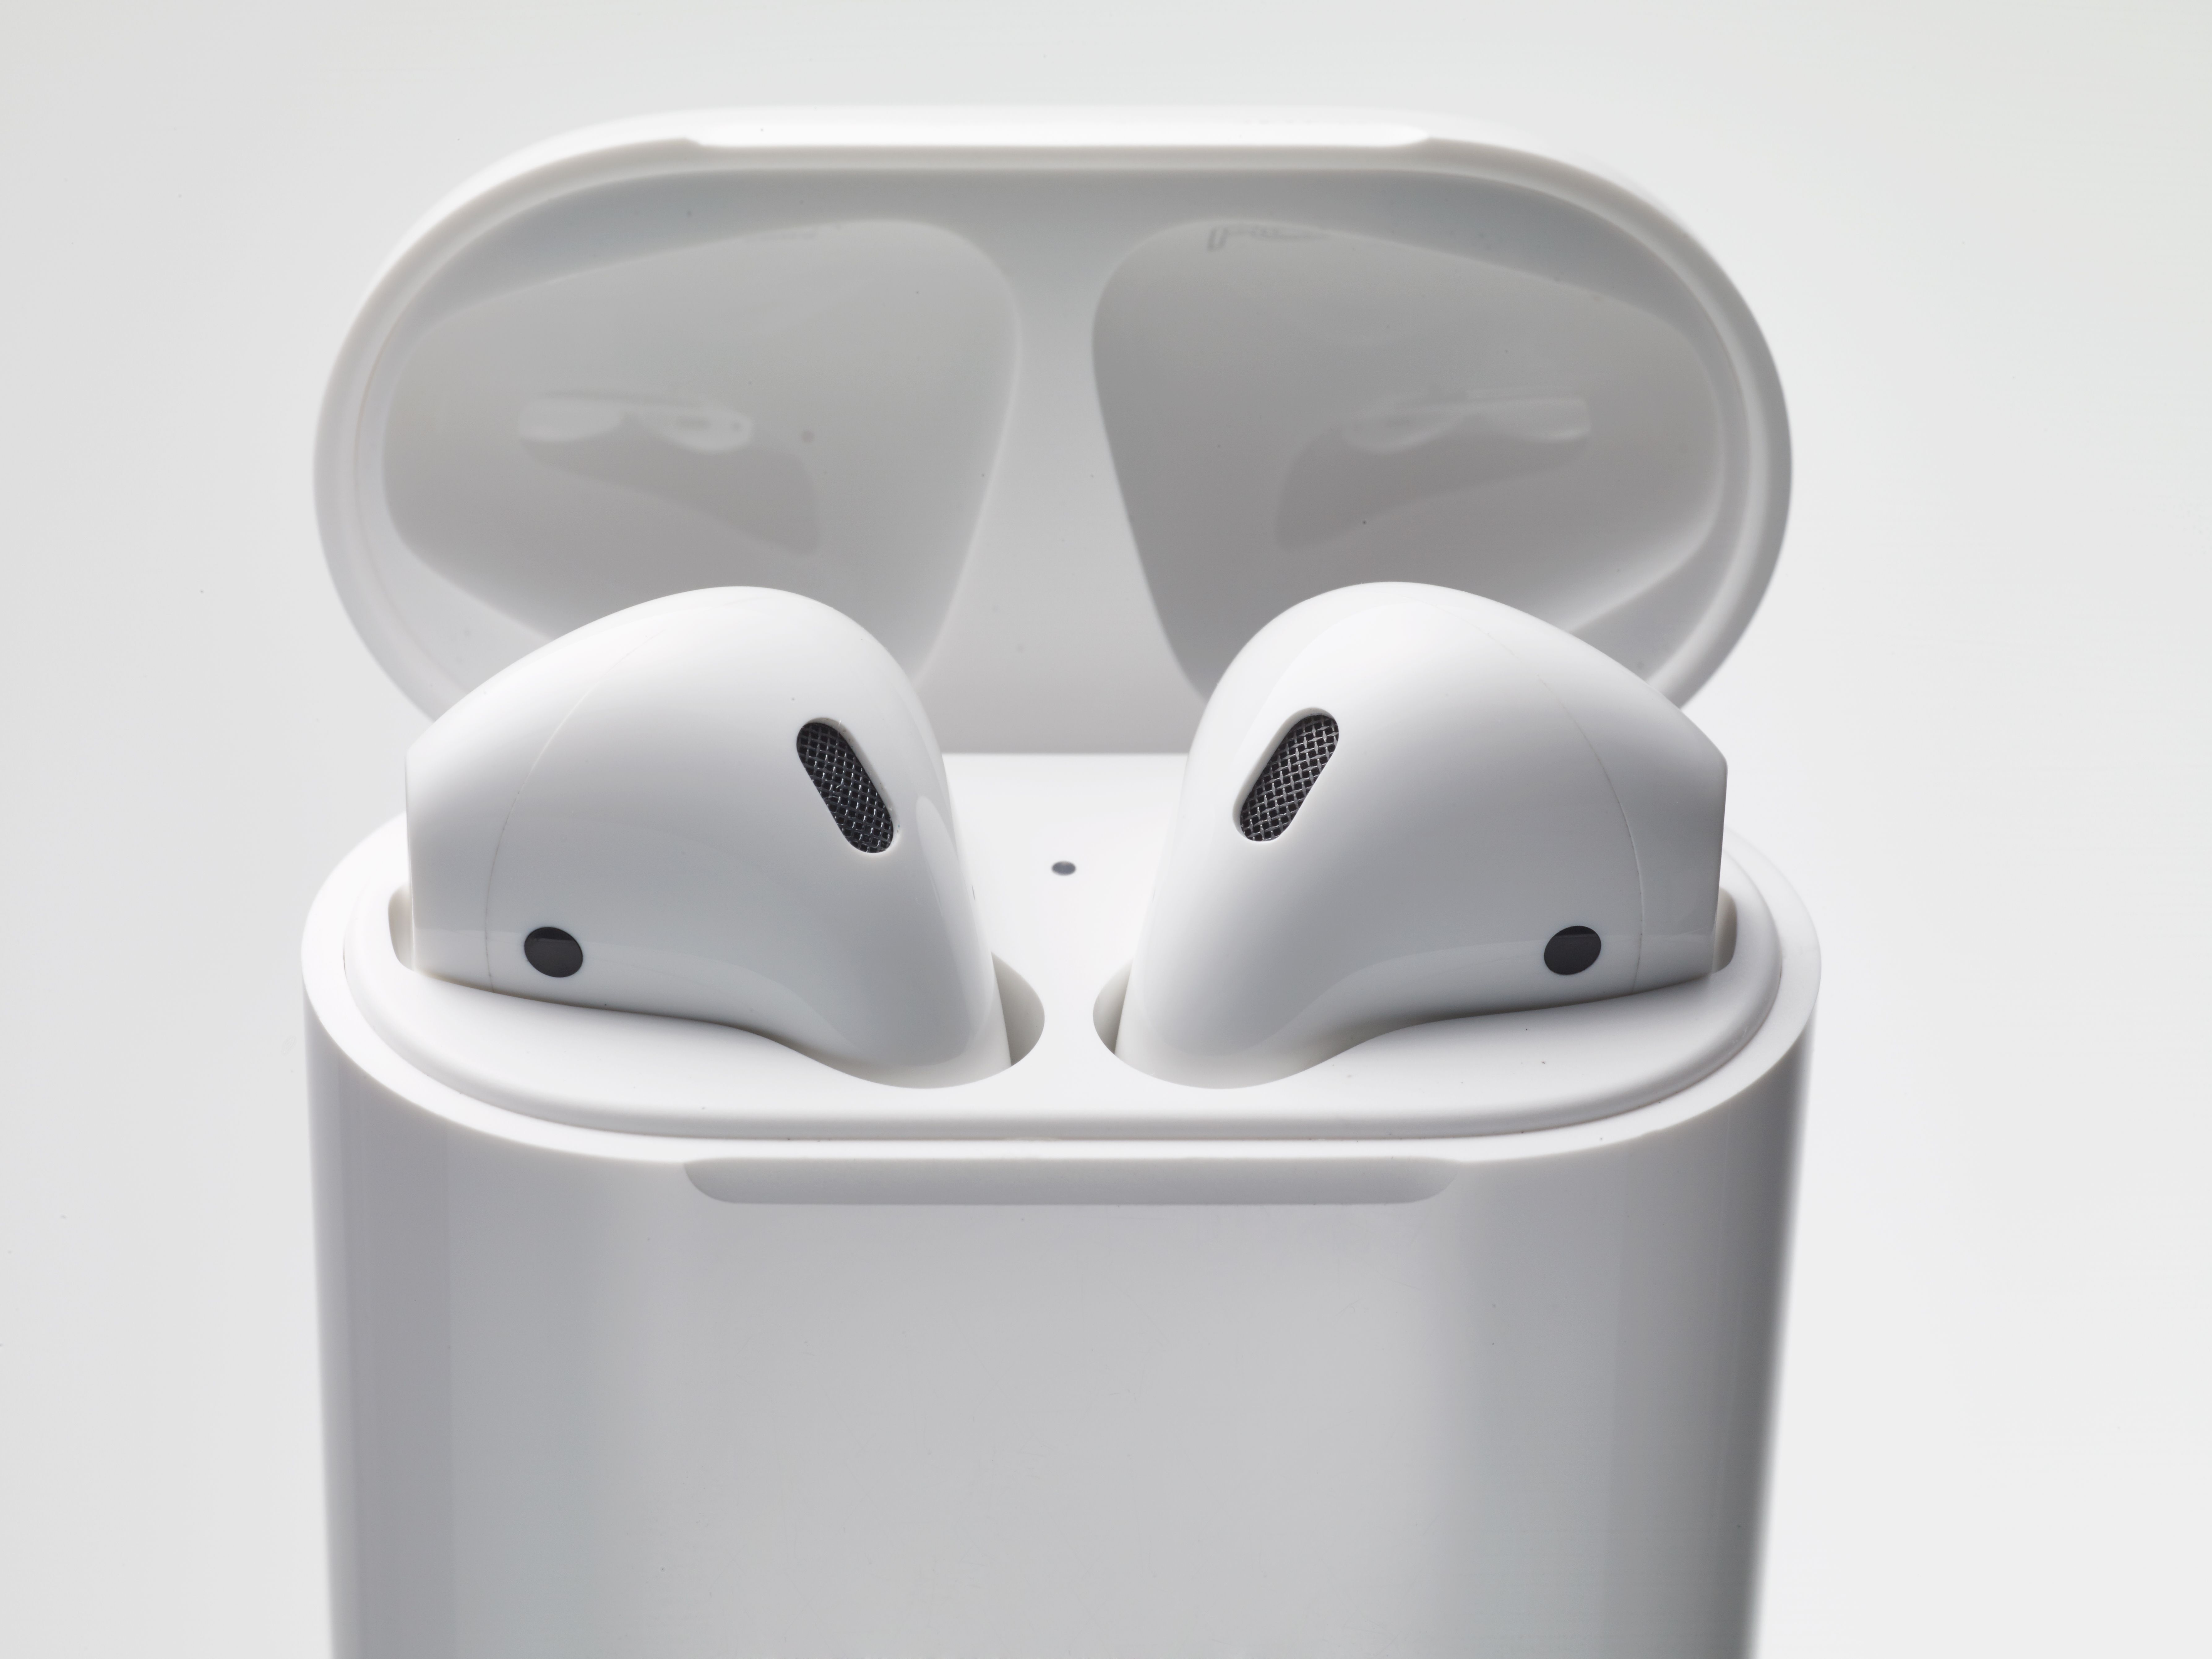 Pin On Airpods Airpods Pro